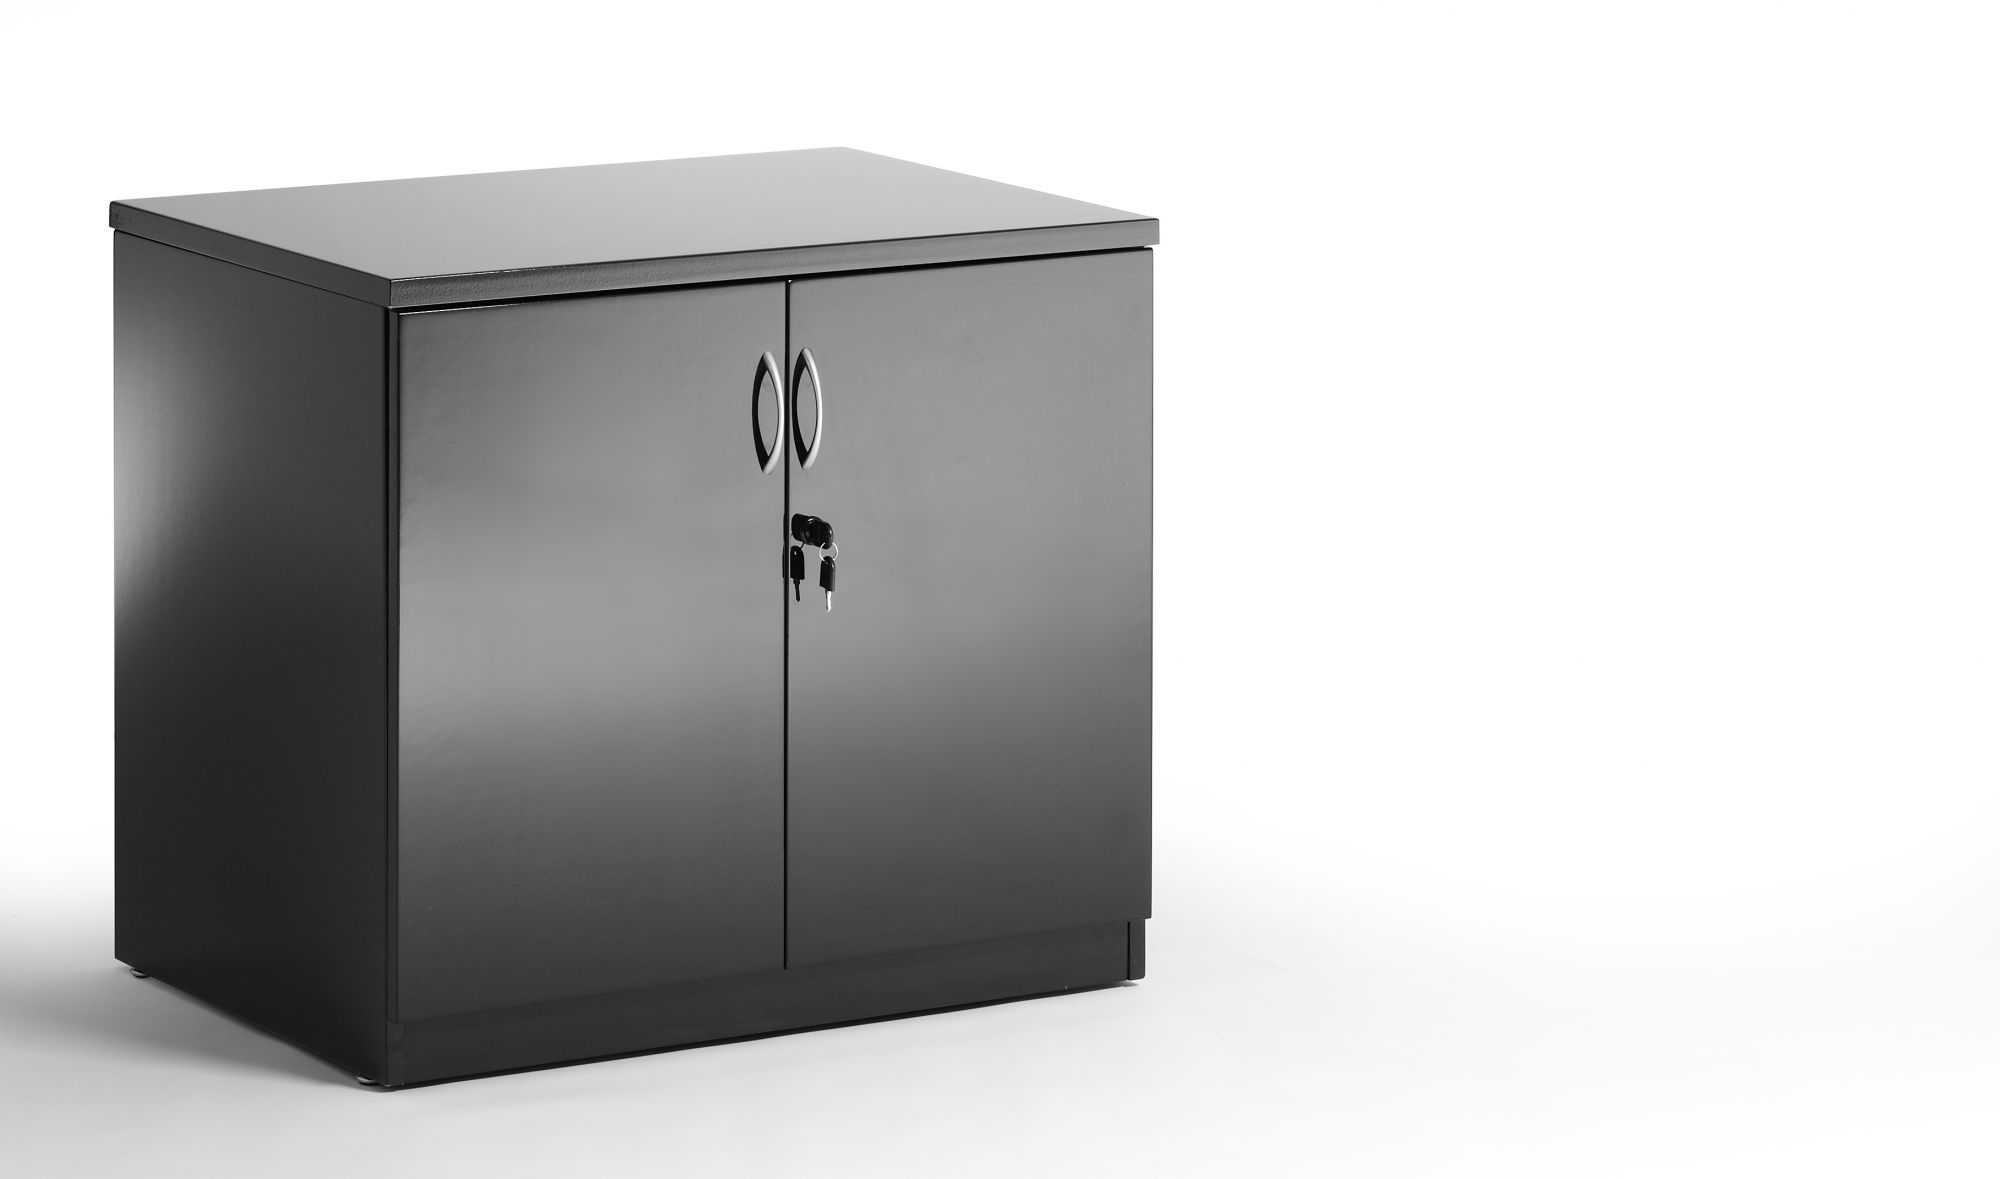 Black Hi Gloss cupboard